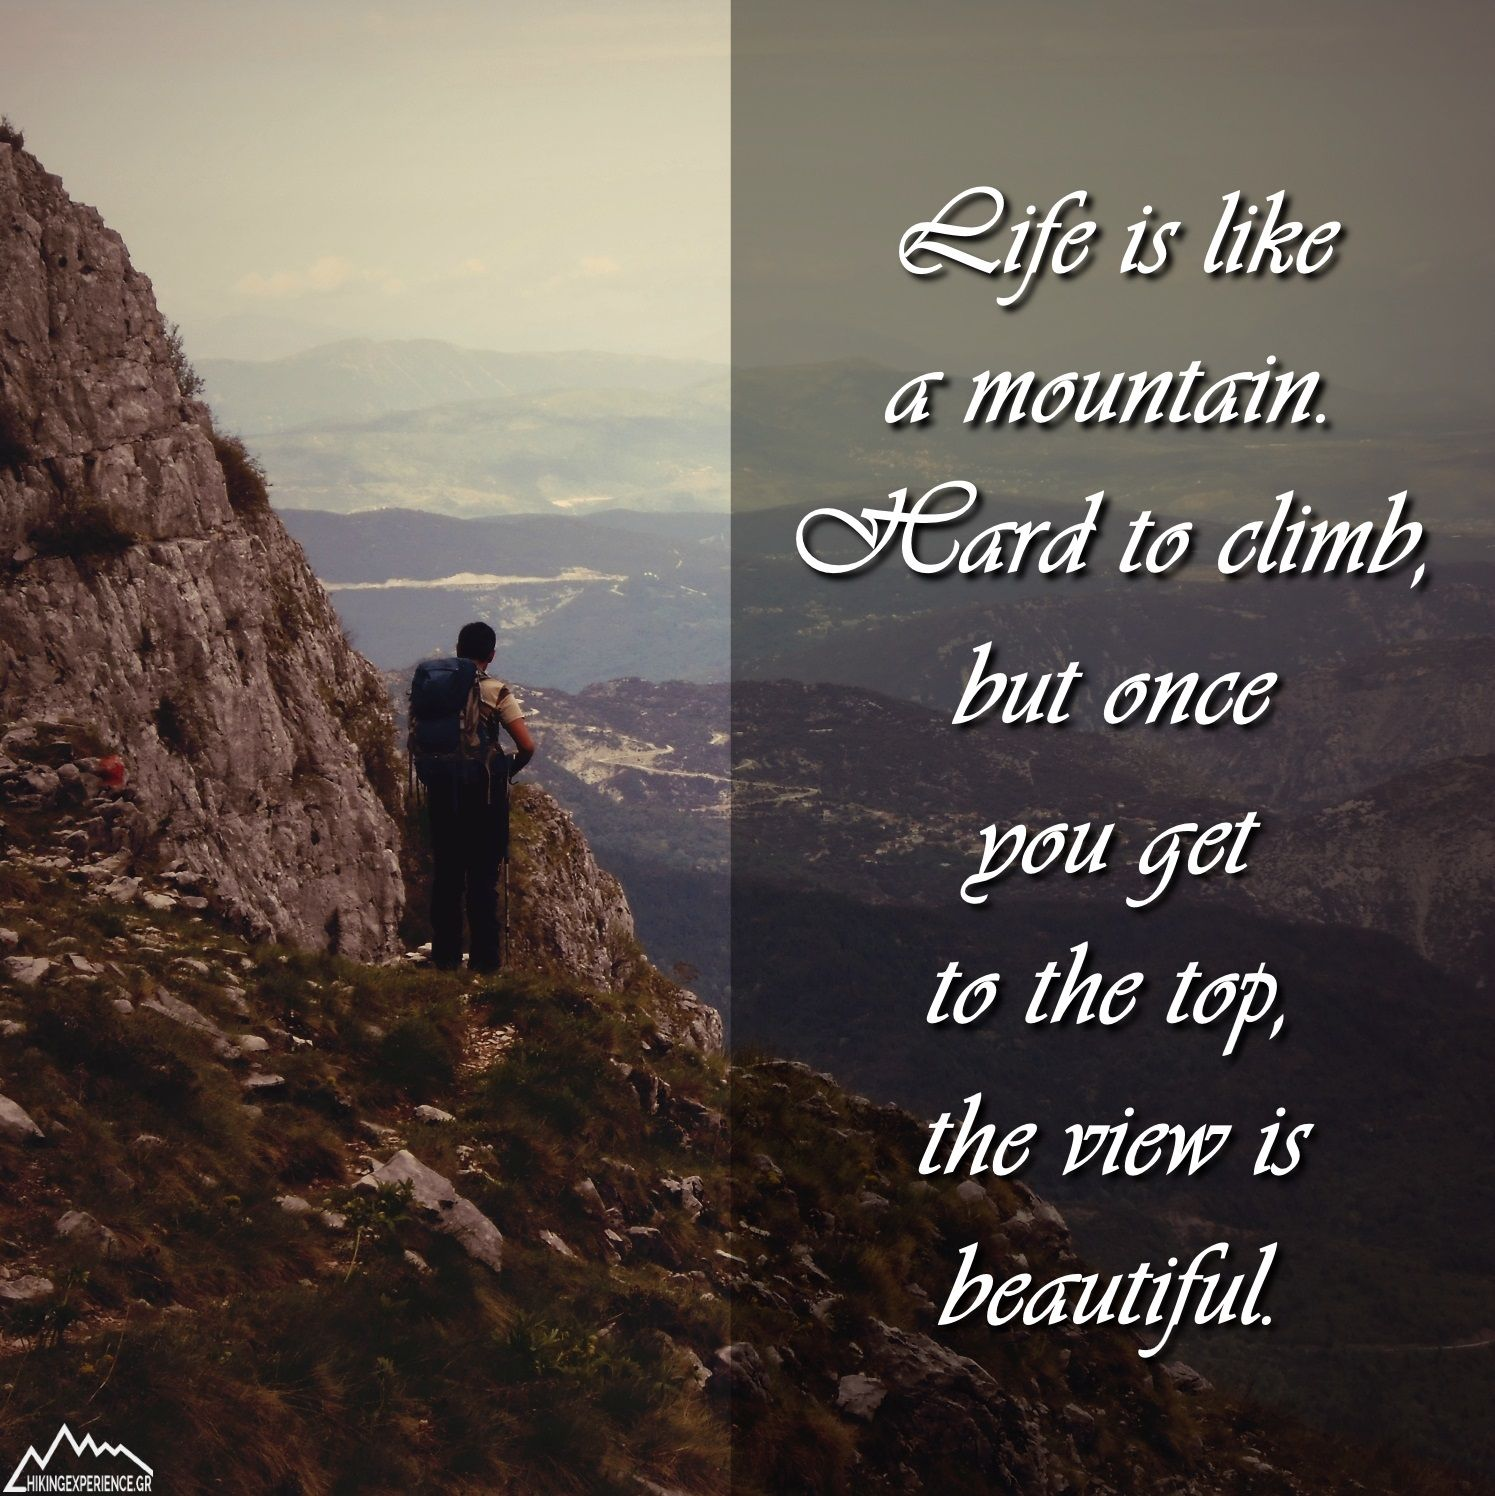 Life Is Like A Mountain Hard To Climb But Once You Get To The Top The View Is Beautiful Hiking Quotes Life Is Like Life Quotes Pictures